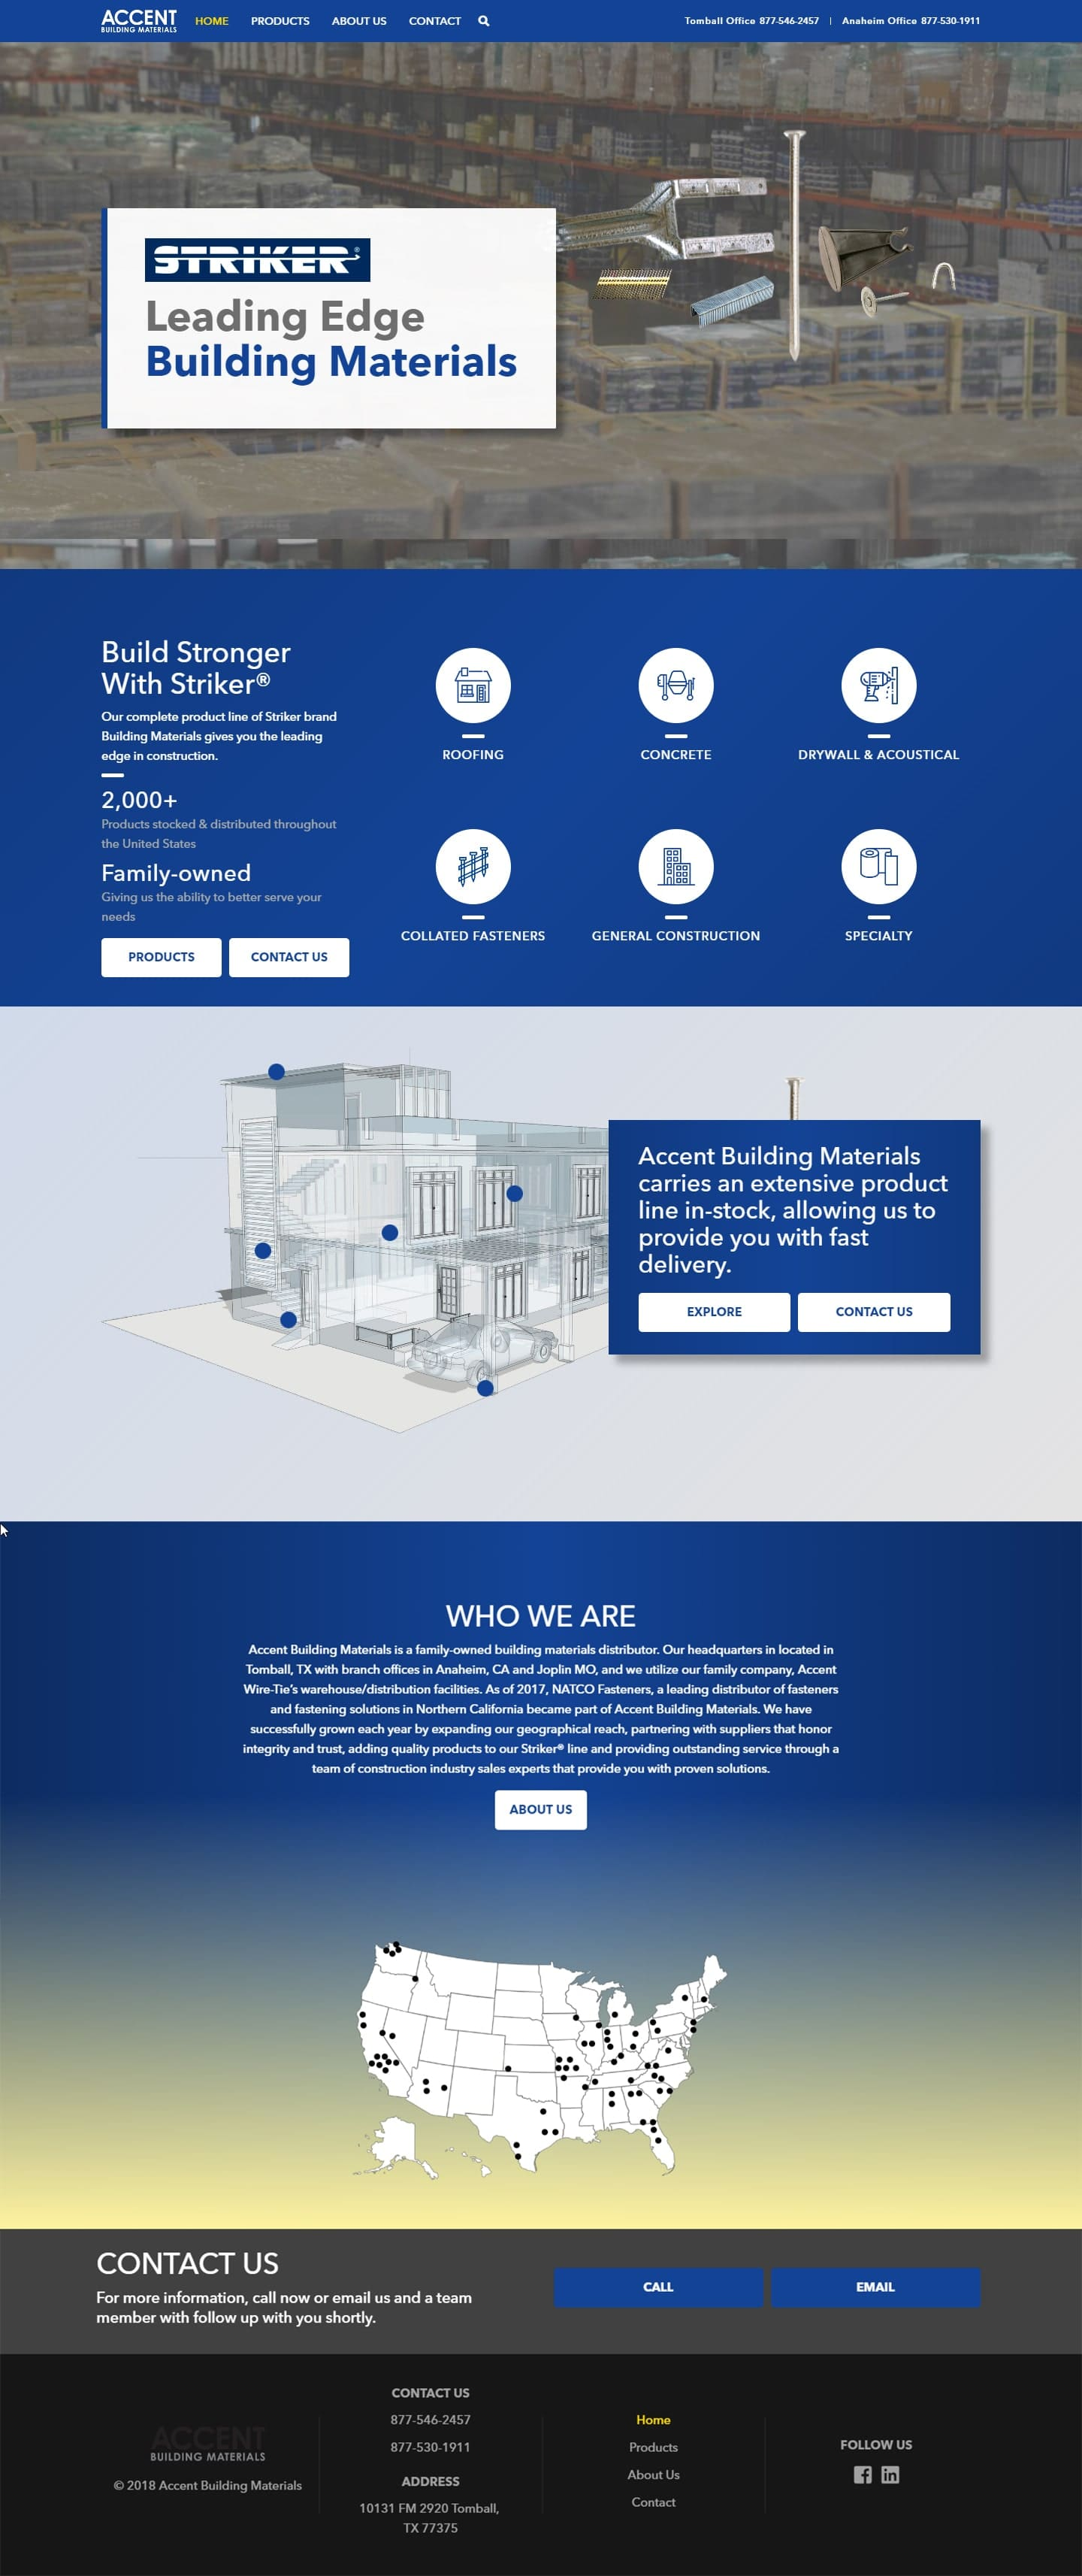 Revive Room Web Design Page